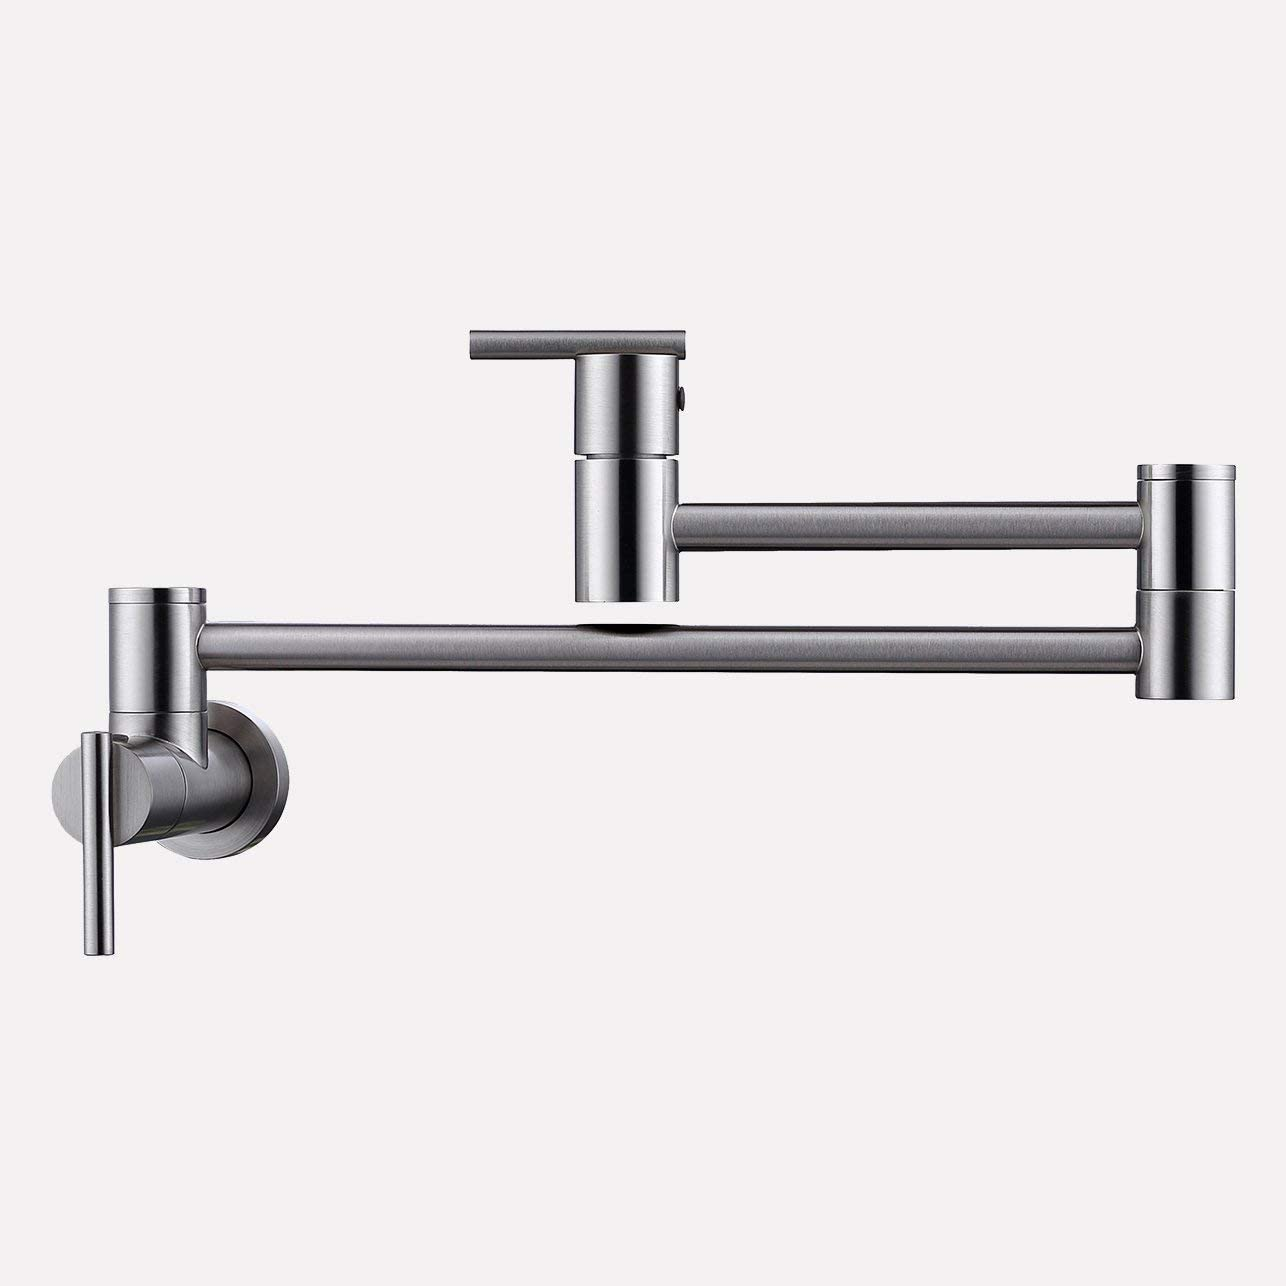 Magnus Home Products Hinshaw Retractable Wall-Mount Pot Filler Faucet Brushed Nickel 5.0 lb